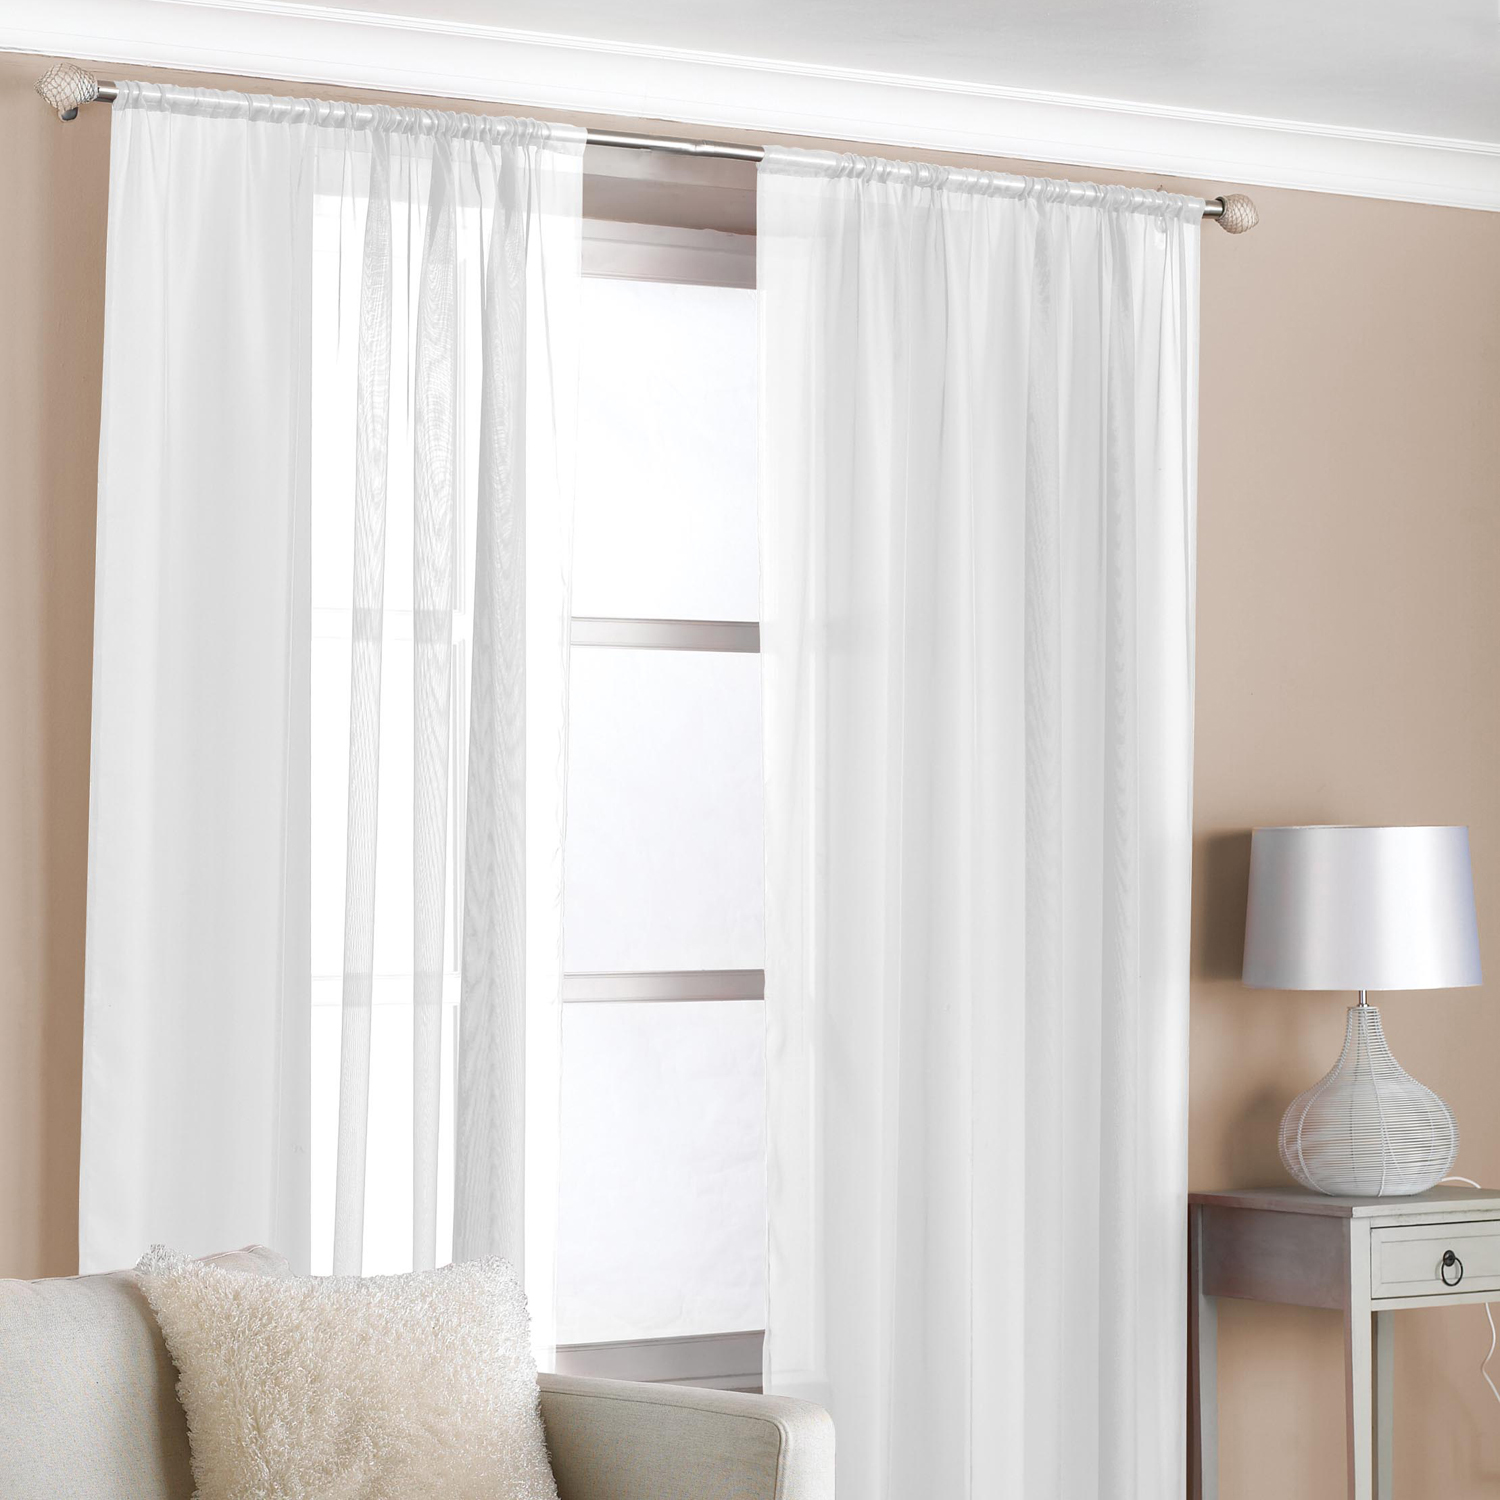 slot top voile curtains white 2 pack home store more. Black Bedroom Furniture Sets. Home Design Ideas